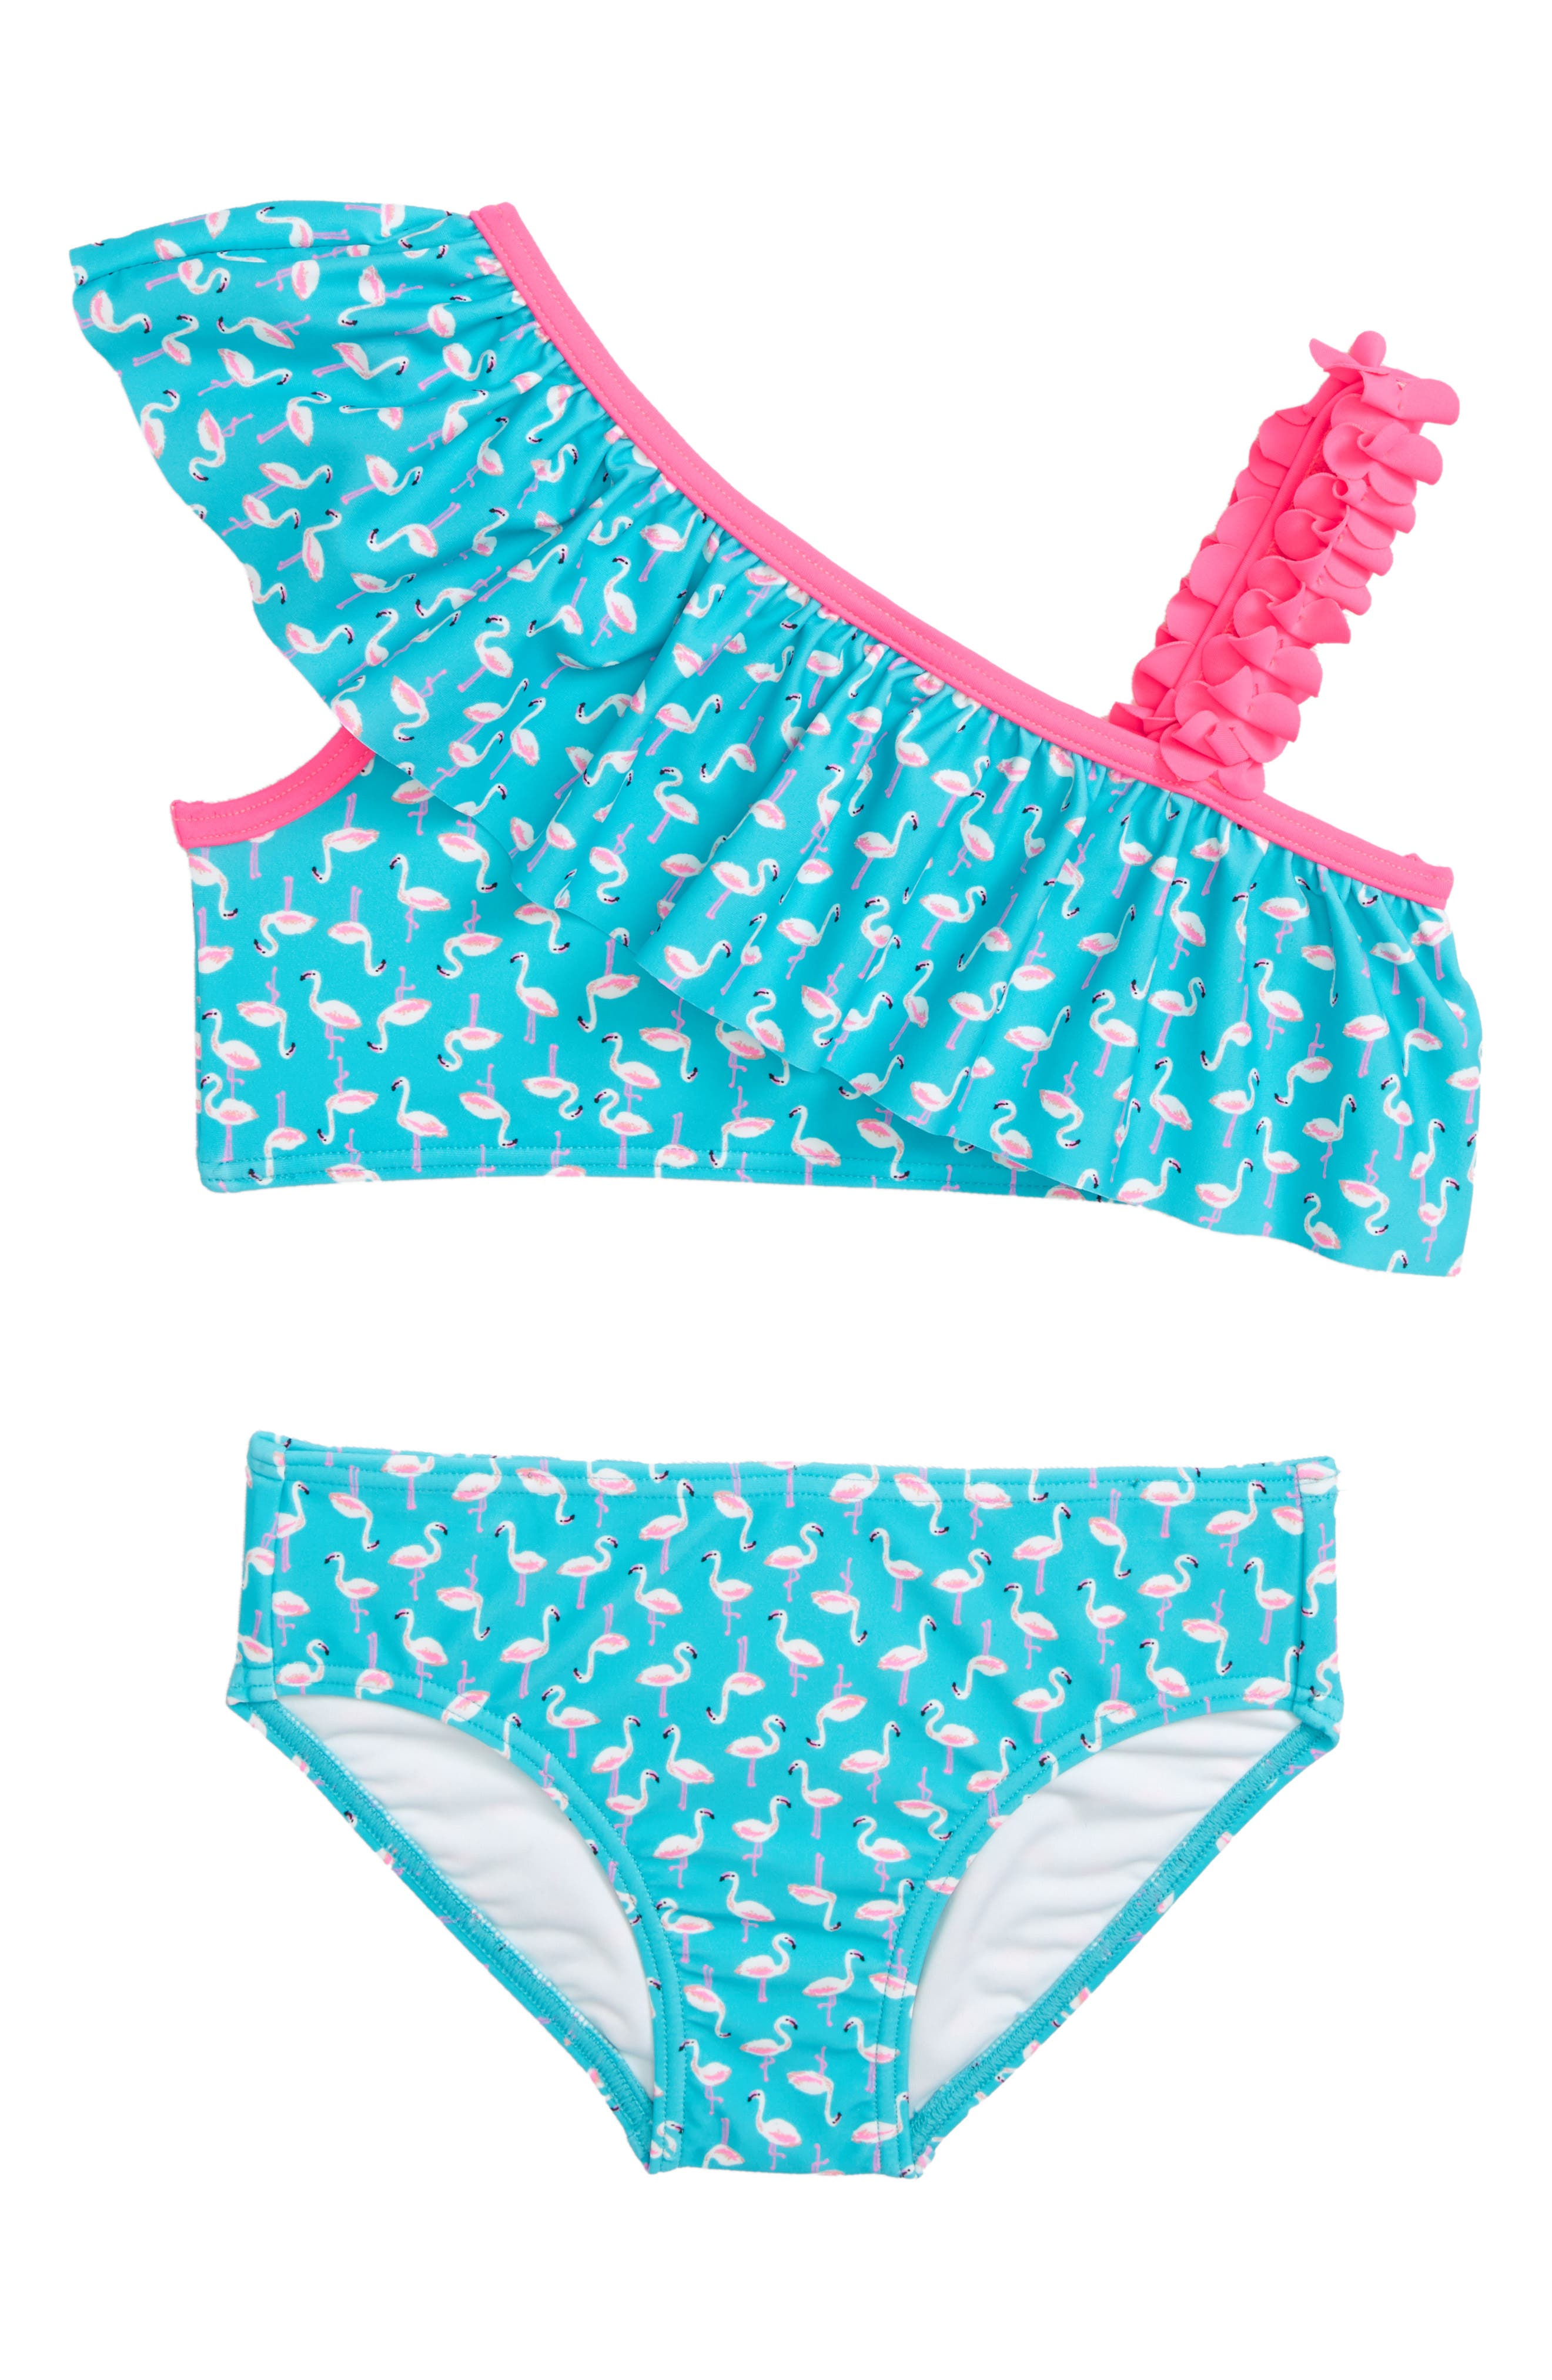 TUCKER + TATE,                             Ruffle One-Shoulder Two-Piece Swimsuit,                             Main thumbnail 1, color,                             440